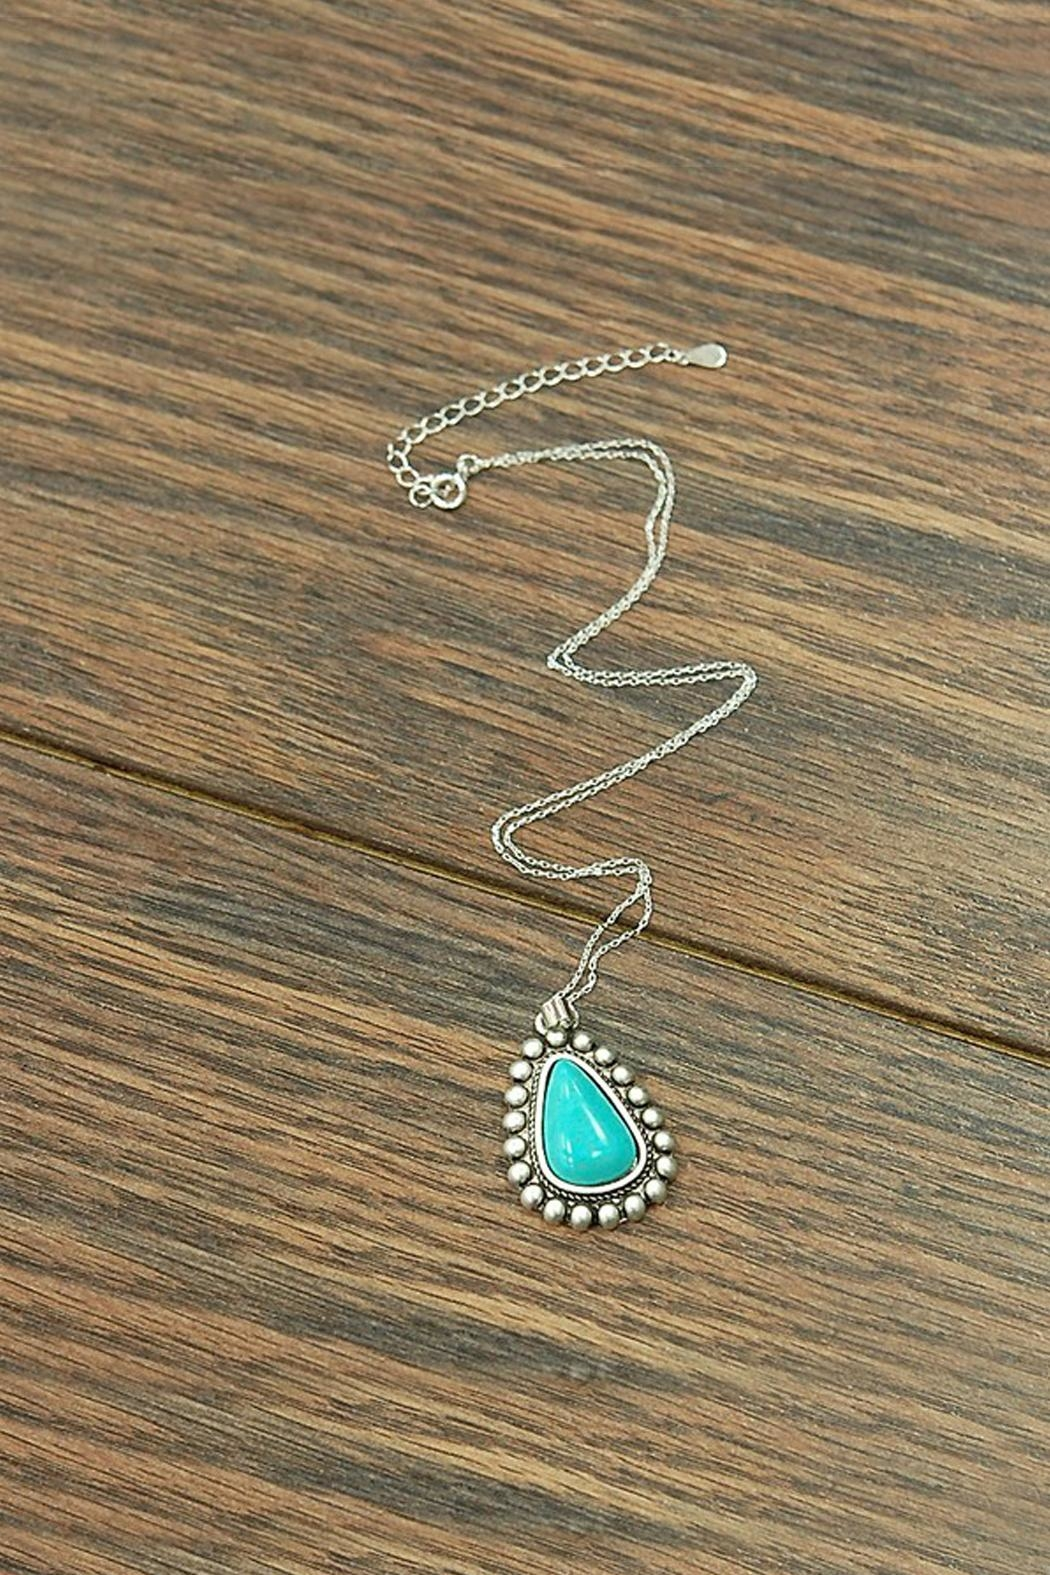 JChronicles Sterling-Silver-Chain-Necklace With Natural-Turquoise-Pendant - Main Image